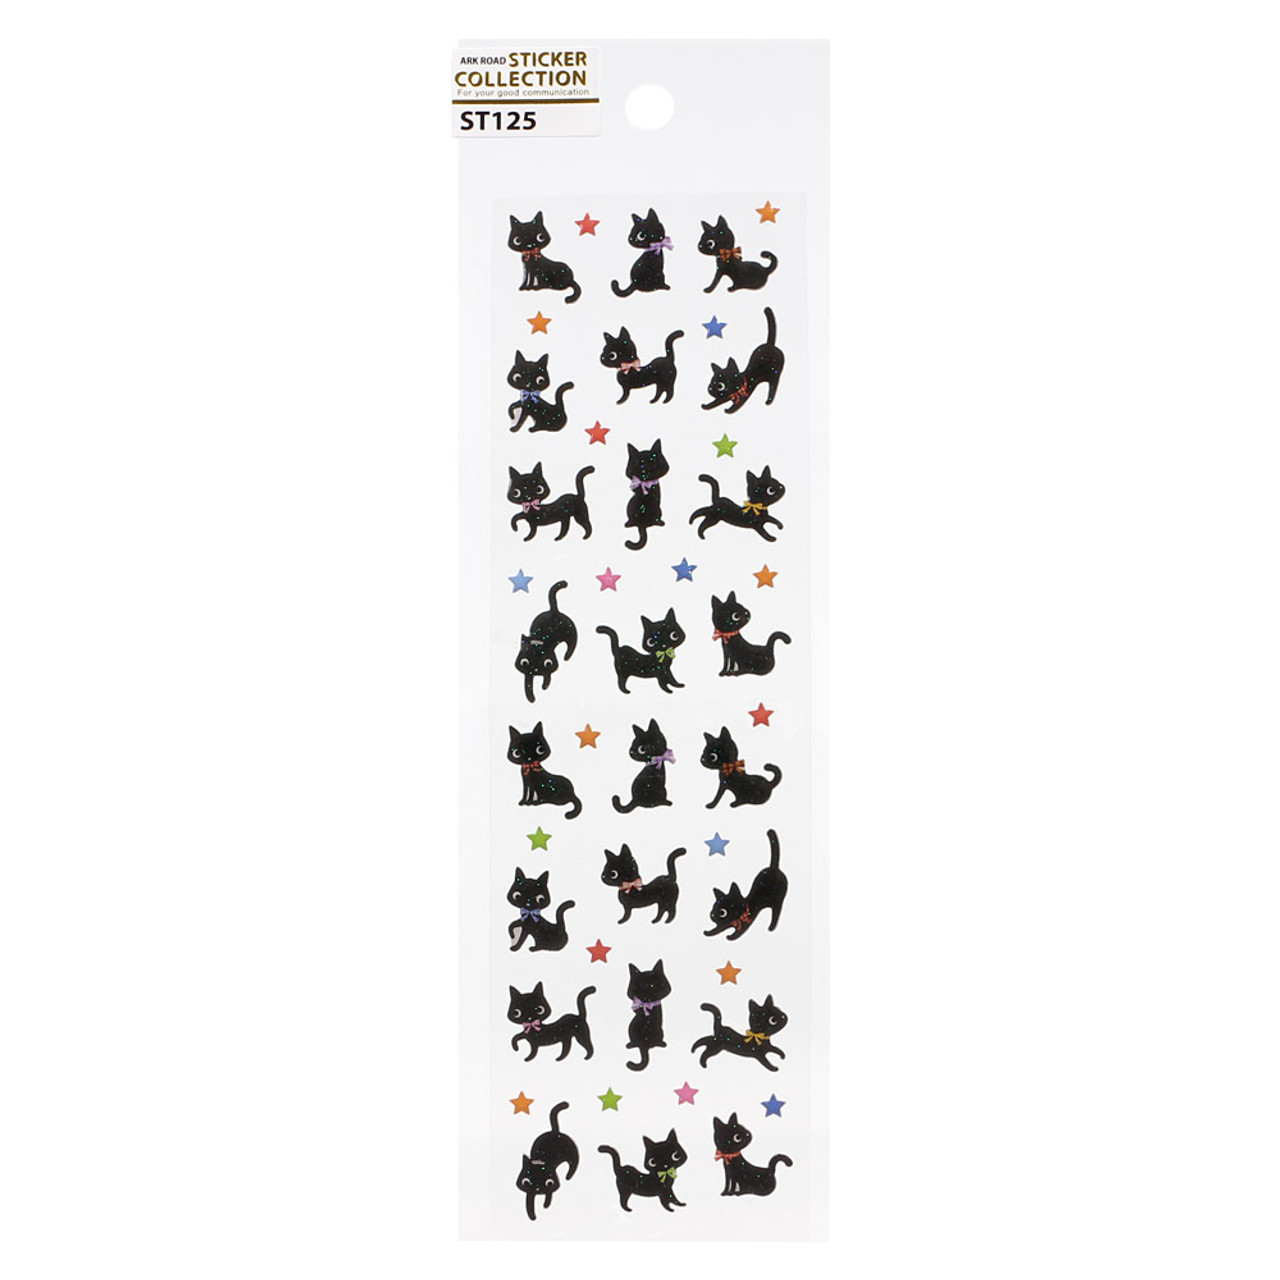 Japan Ark Road Sticker Collection Black Cats & Stars Sticker ST-125 ( Front View )